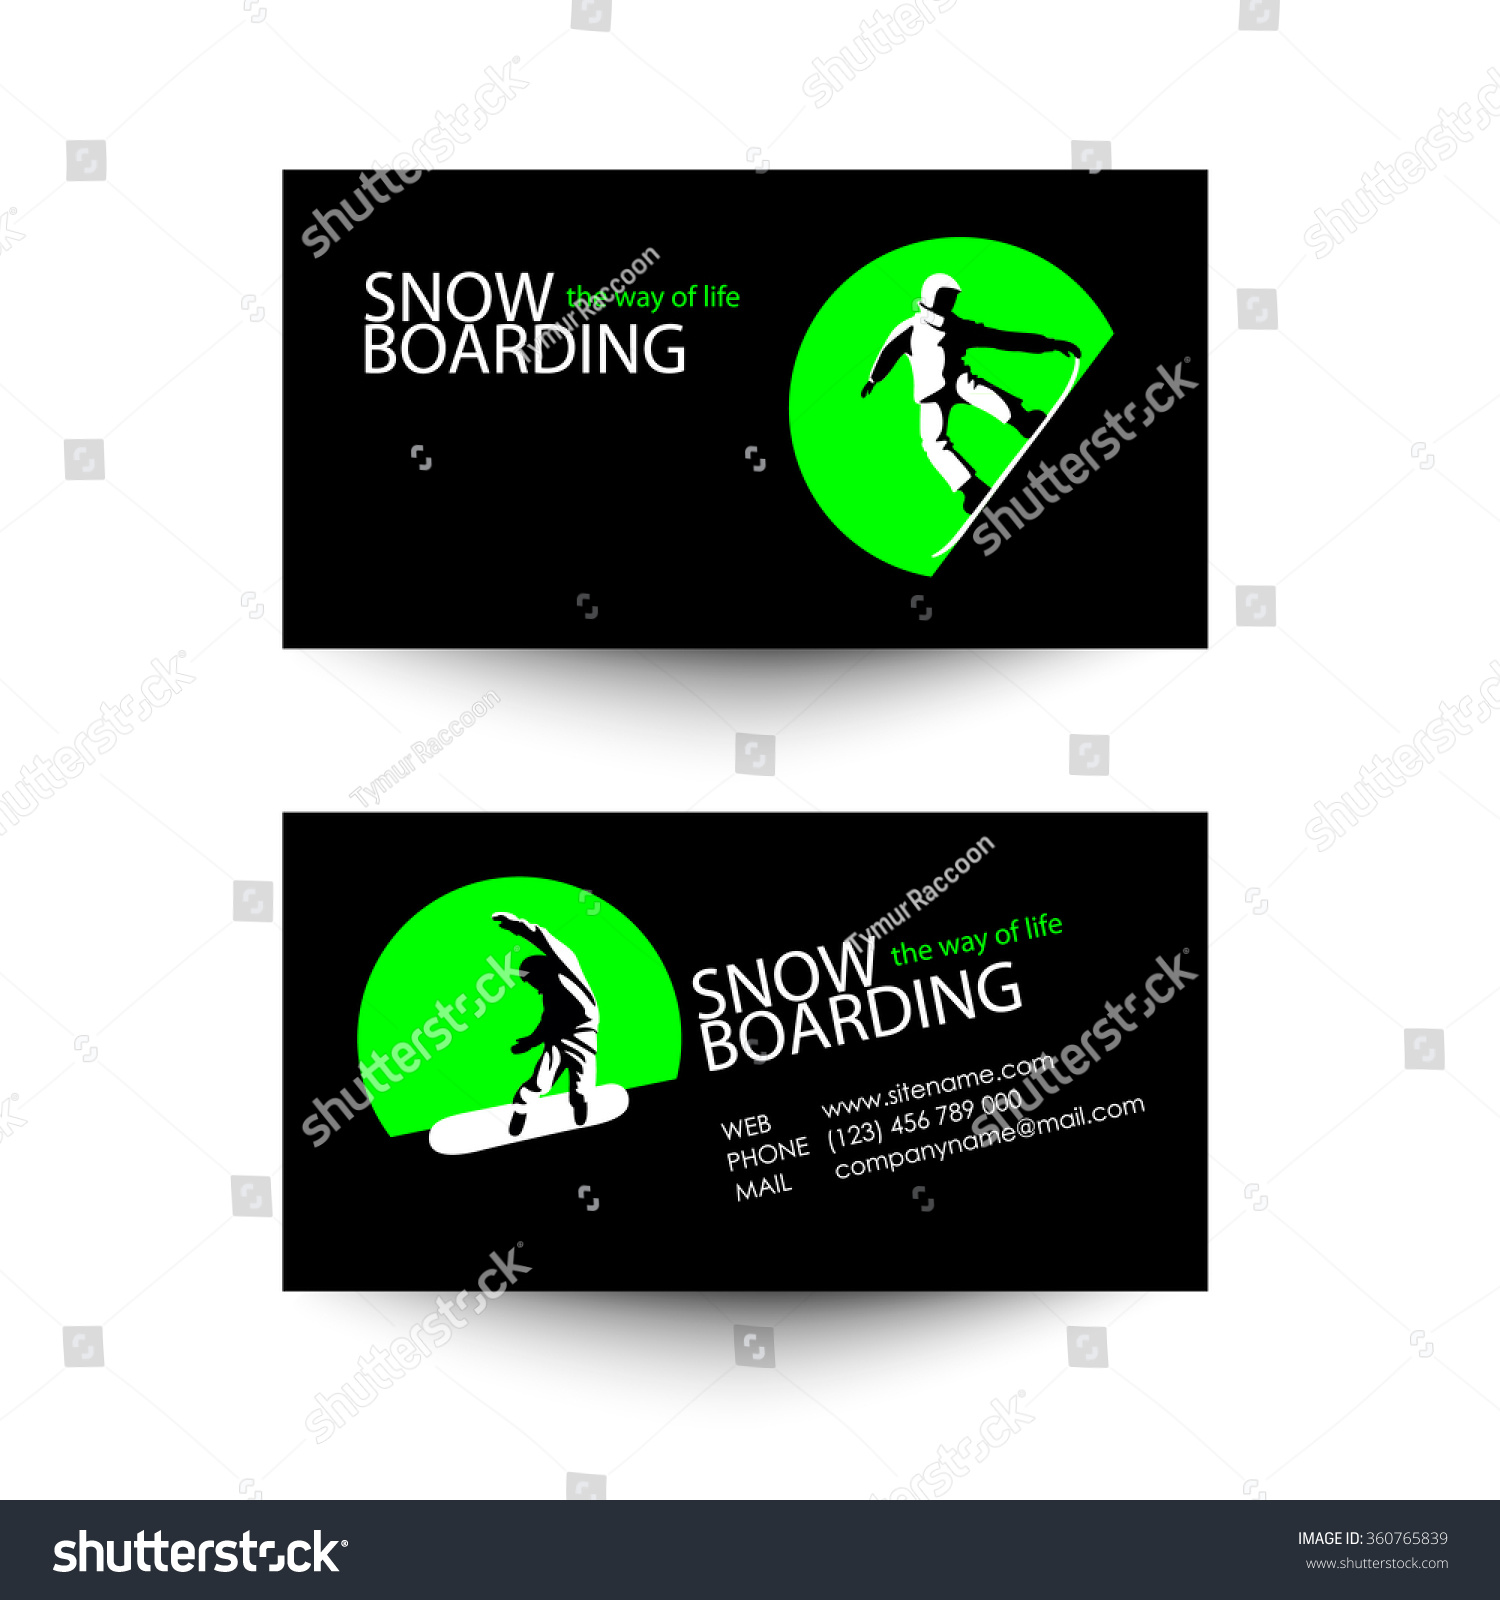 Amazing Business Card Design Idea Photos - Business Card Ideas ...